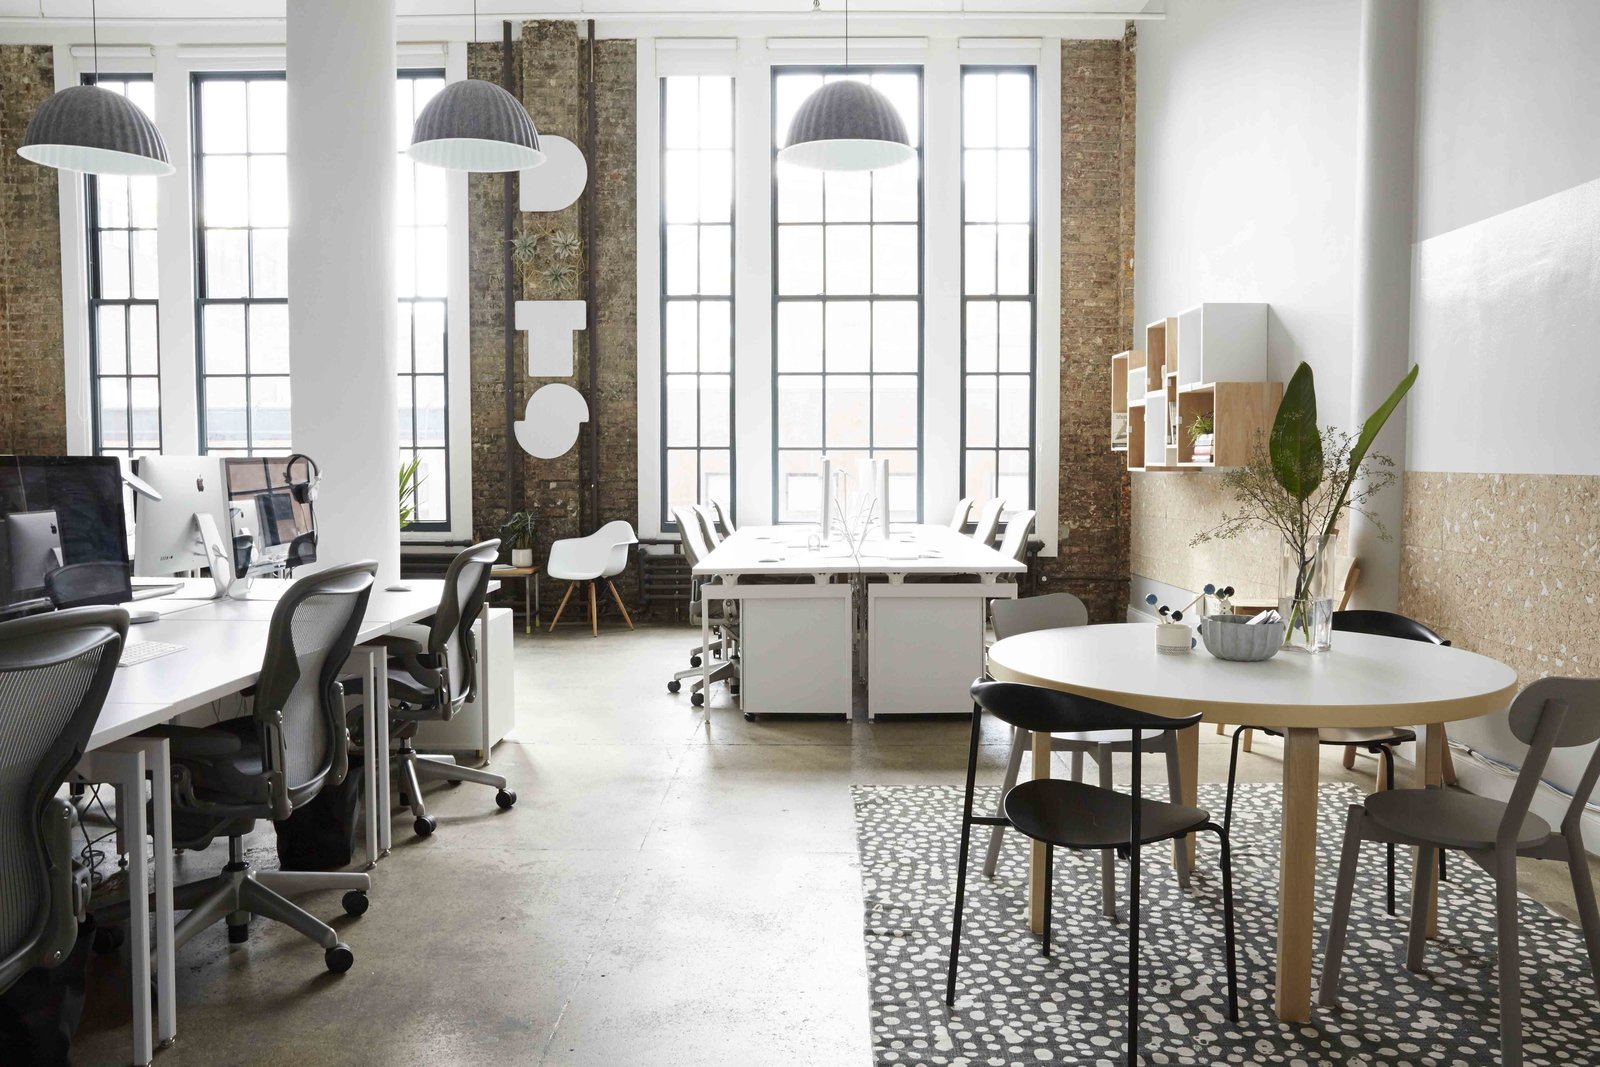 """The new office makes the most of the exposed brick, tall ceilings, and large southfacing windows. """"Because we are based in New York, we don't have a ton of space,"""" says Dots co-founder Patrick Moberg. """"We wanted a clean, thoughtfully designed place to build and play games."""" Murphy interpreted these wishes into an aesthetic she describes as """"traditional American office meets Scandinavian home.""""  Office by Mark Lincoln from Scandinavian-Inspired Office Design in NYC"""